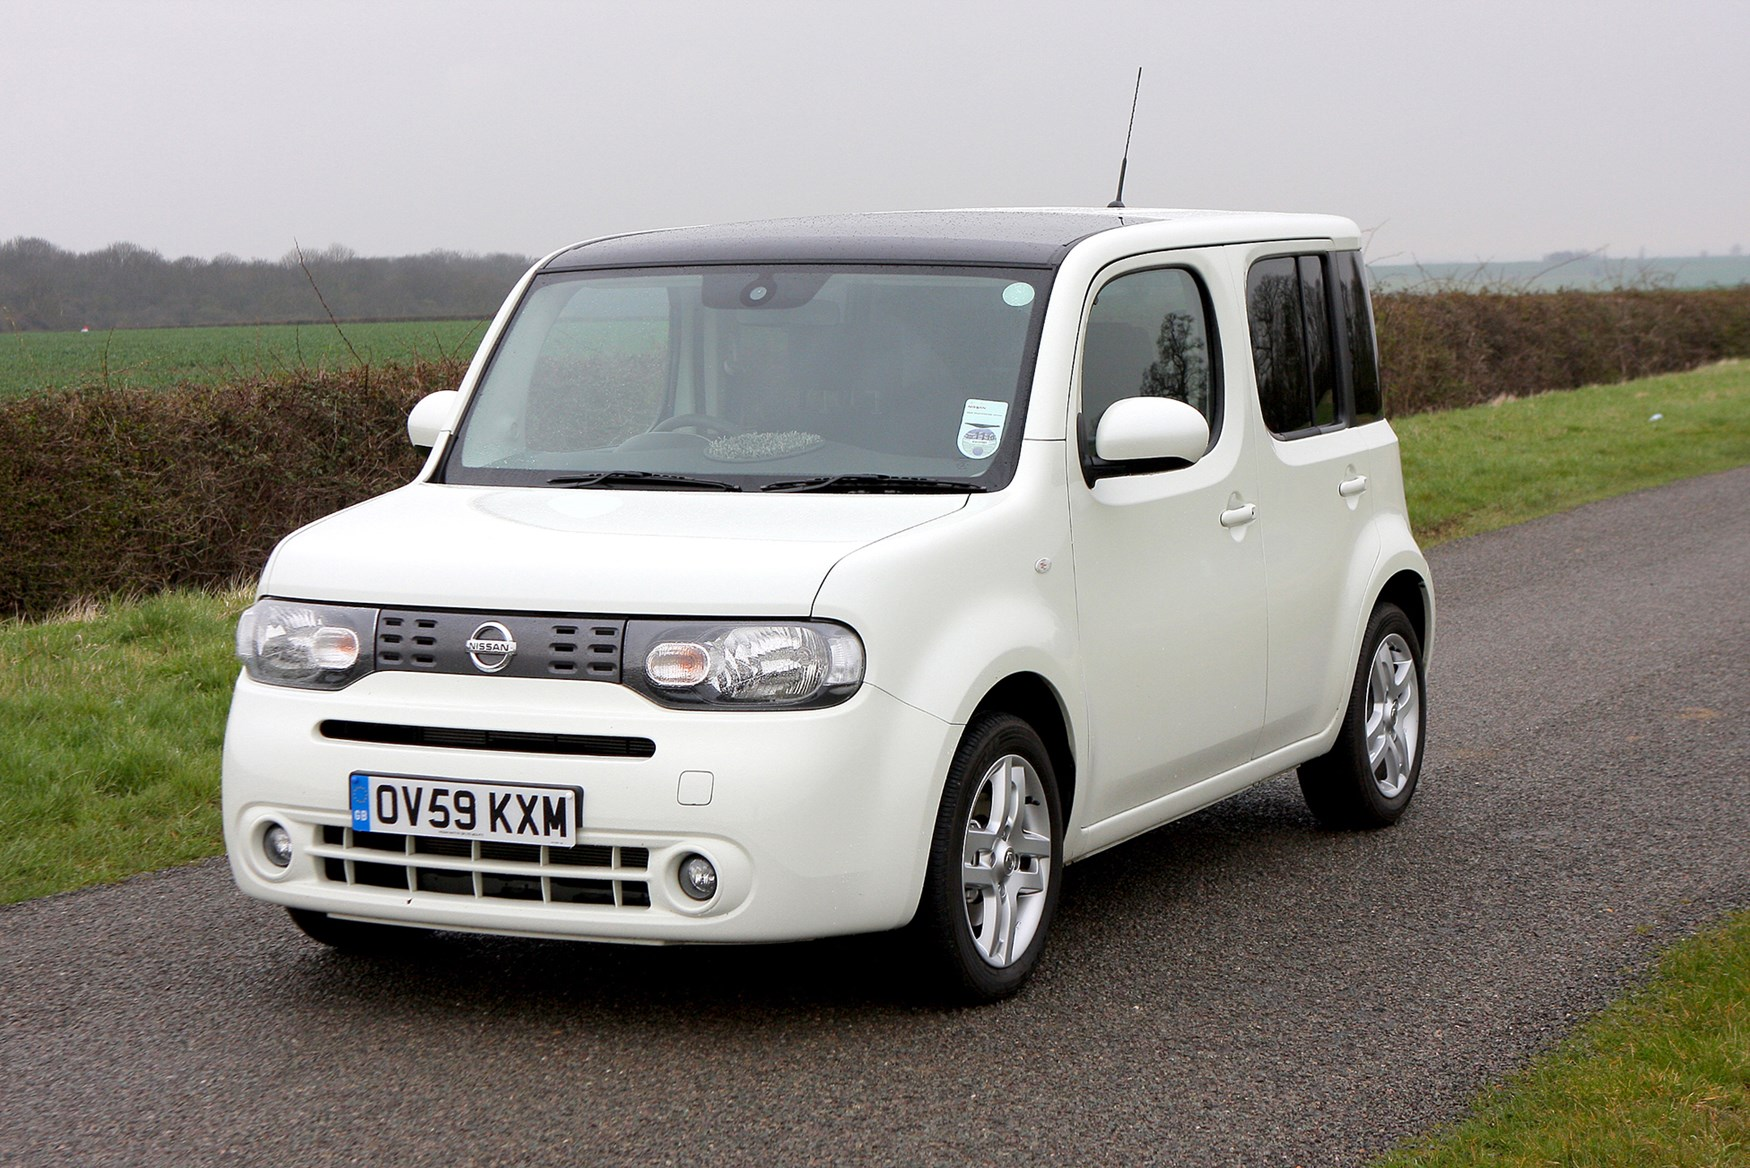 nissan cube estate review 2010 2010 parkers. Black Bedroom Furniture Sets. Home Design Ideas